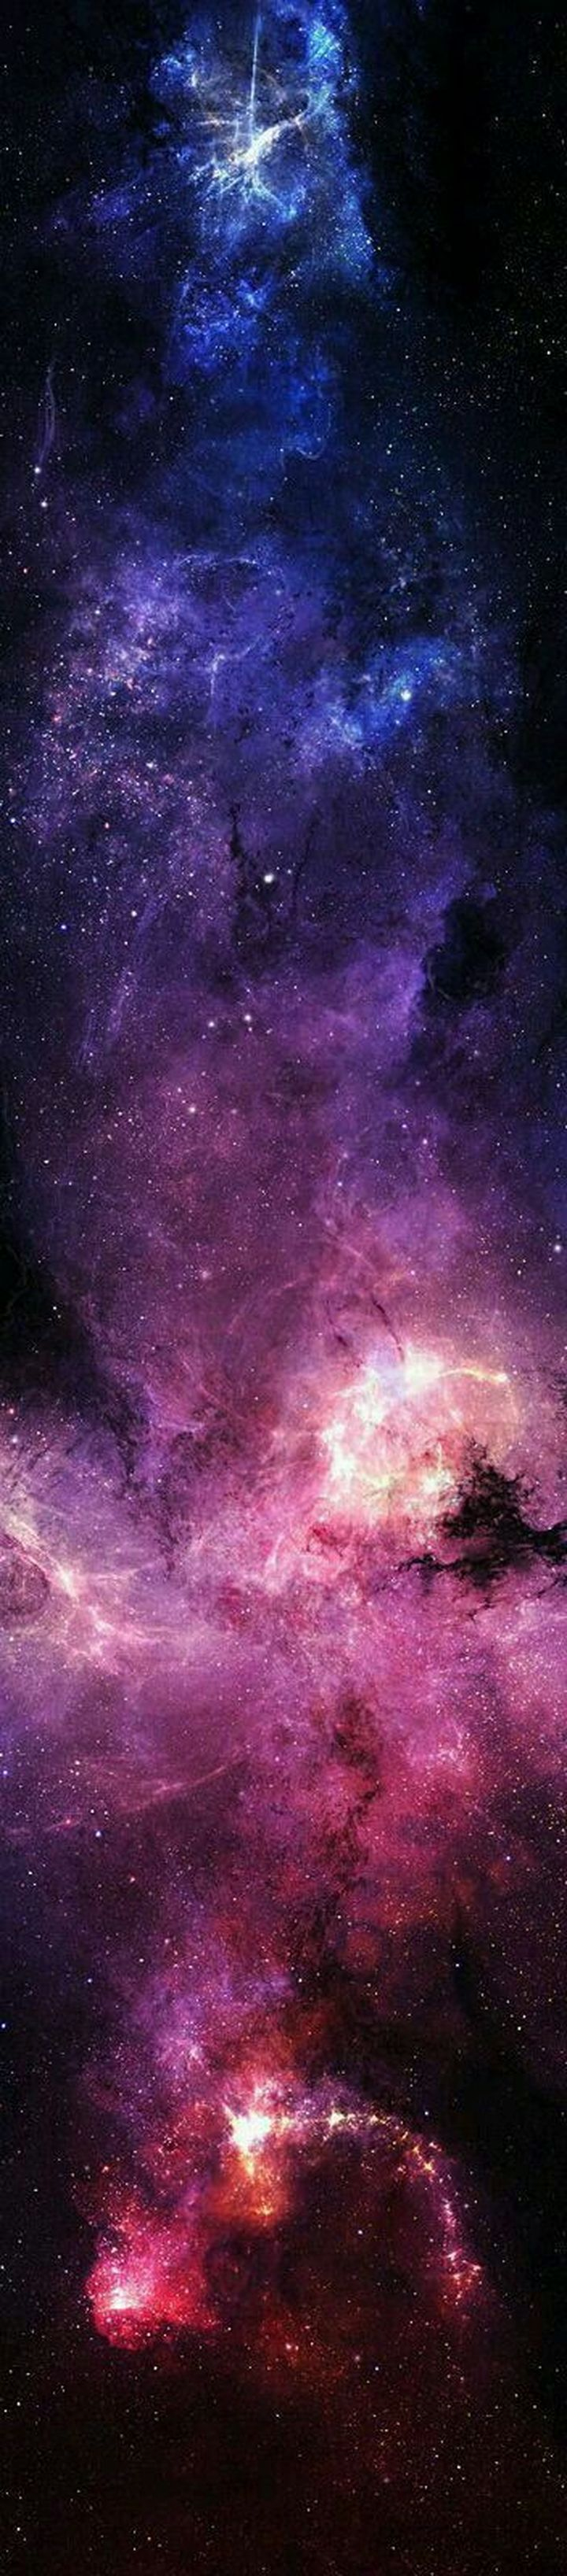 52 Hd Wallpapers For Iphone Xr Amazing Wallpaper For Iphone X Iphone Wallpaper Iphone Background Iphone Wall Nebula Astronomy Wallpaper Backgrounds Galaxy